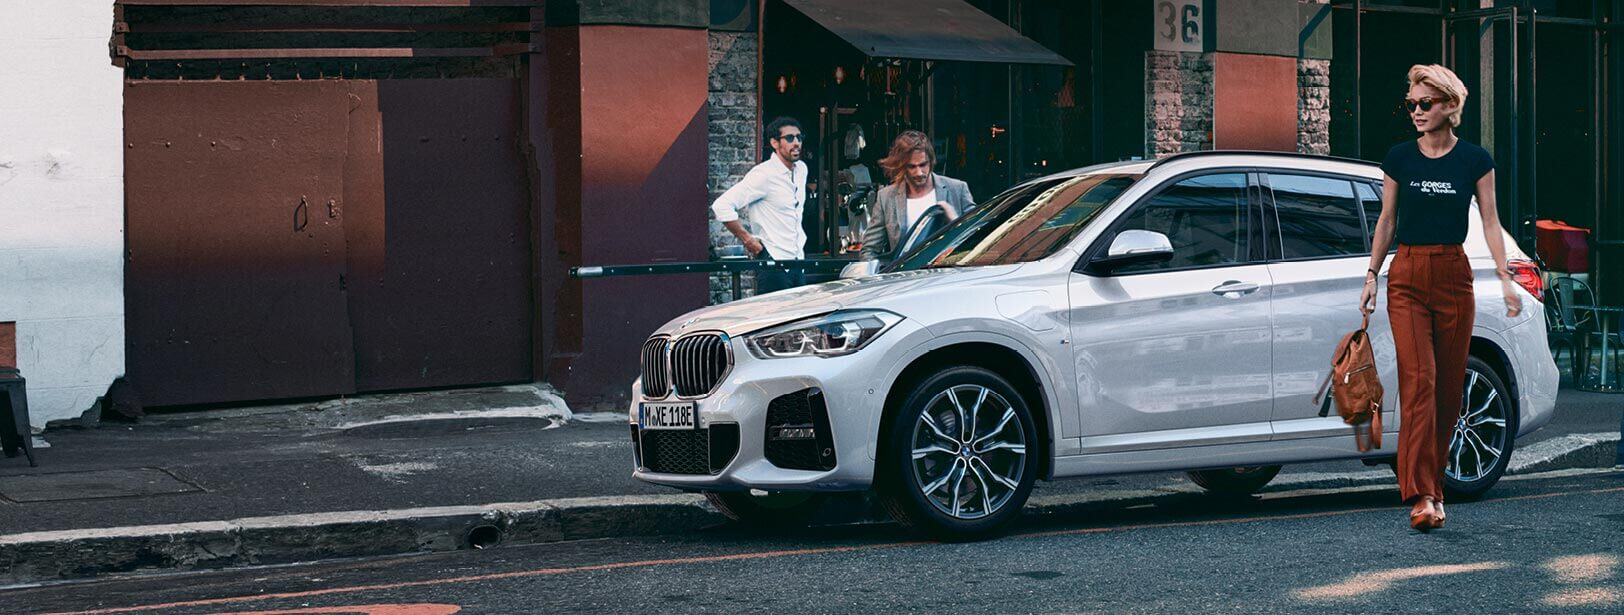 THE X1: DER BMW X1 xDrive25e PLUG-IN-HYBRID